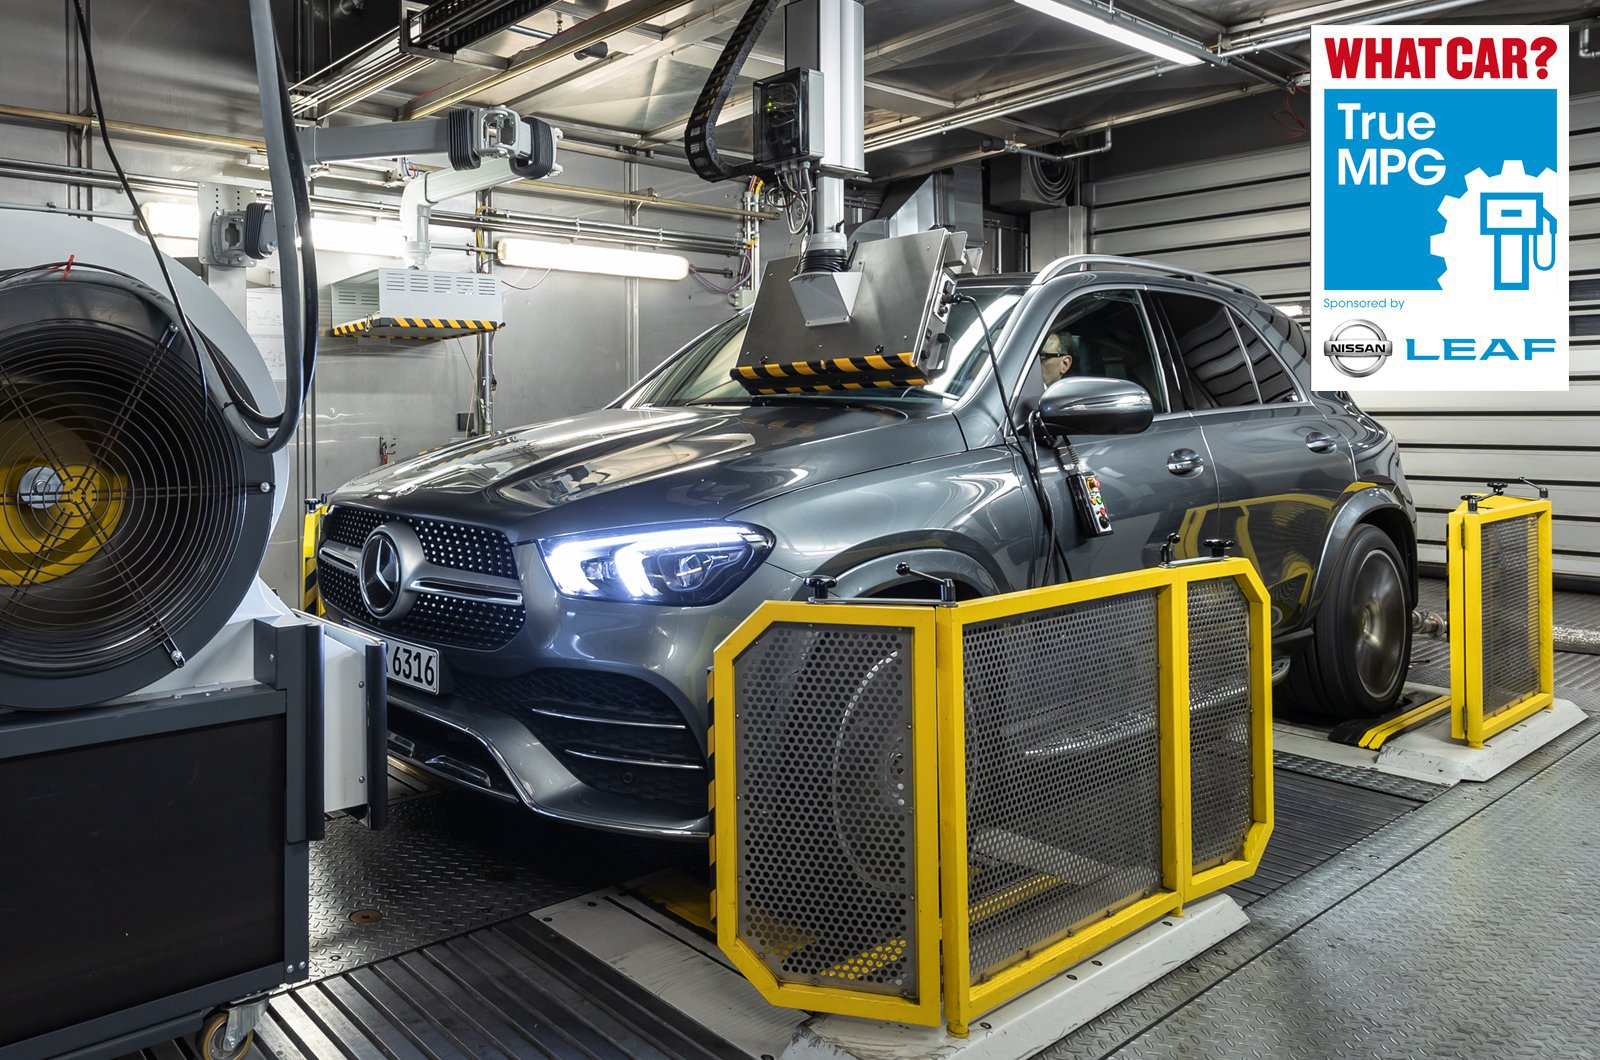 True MPG - Mercedes GLE emissions test